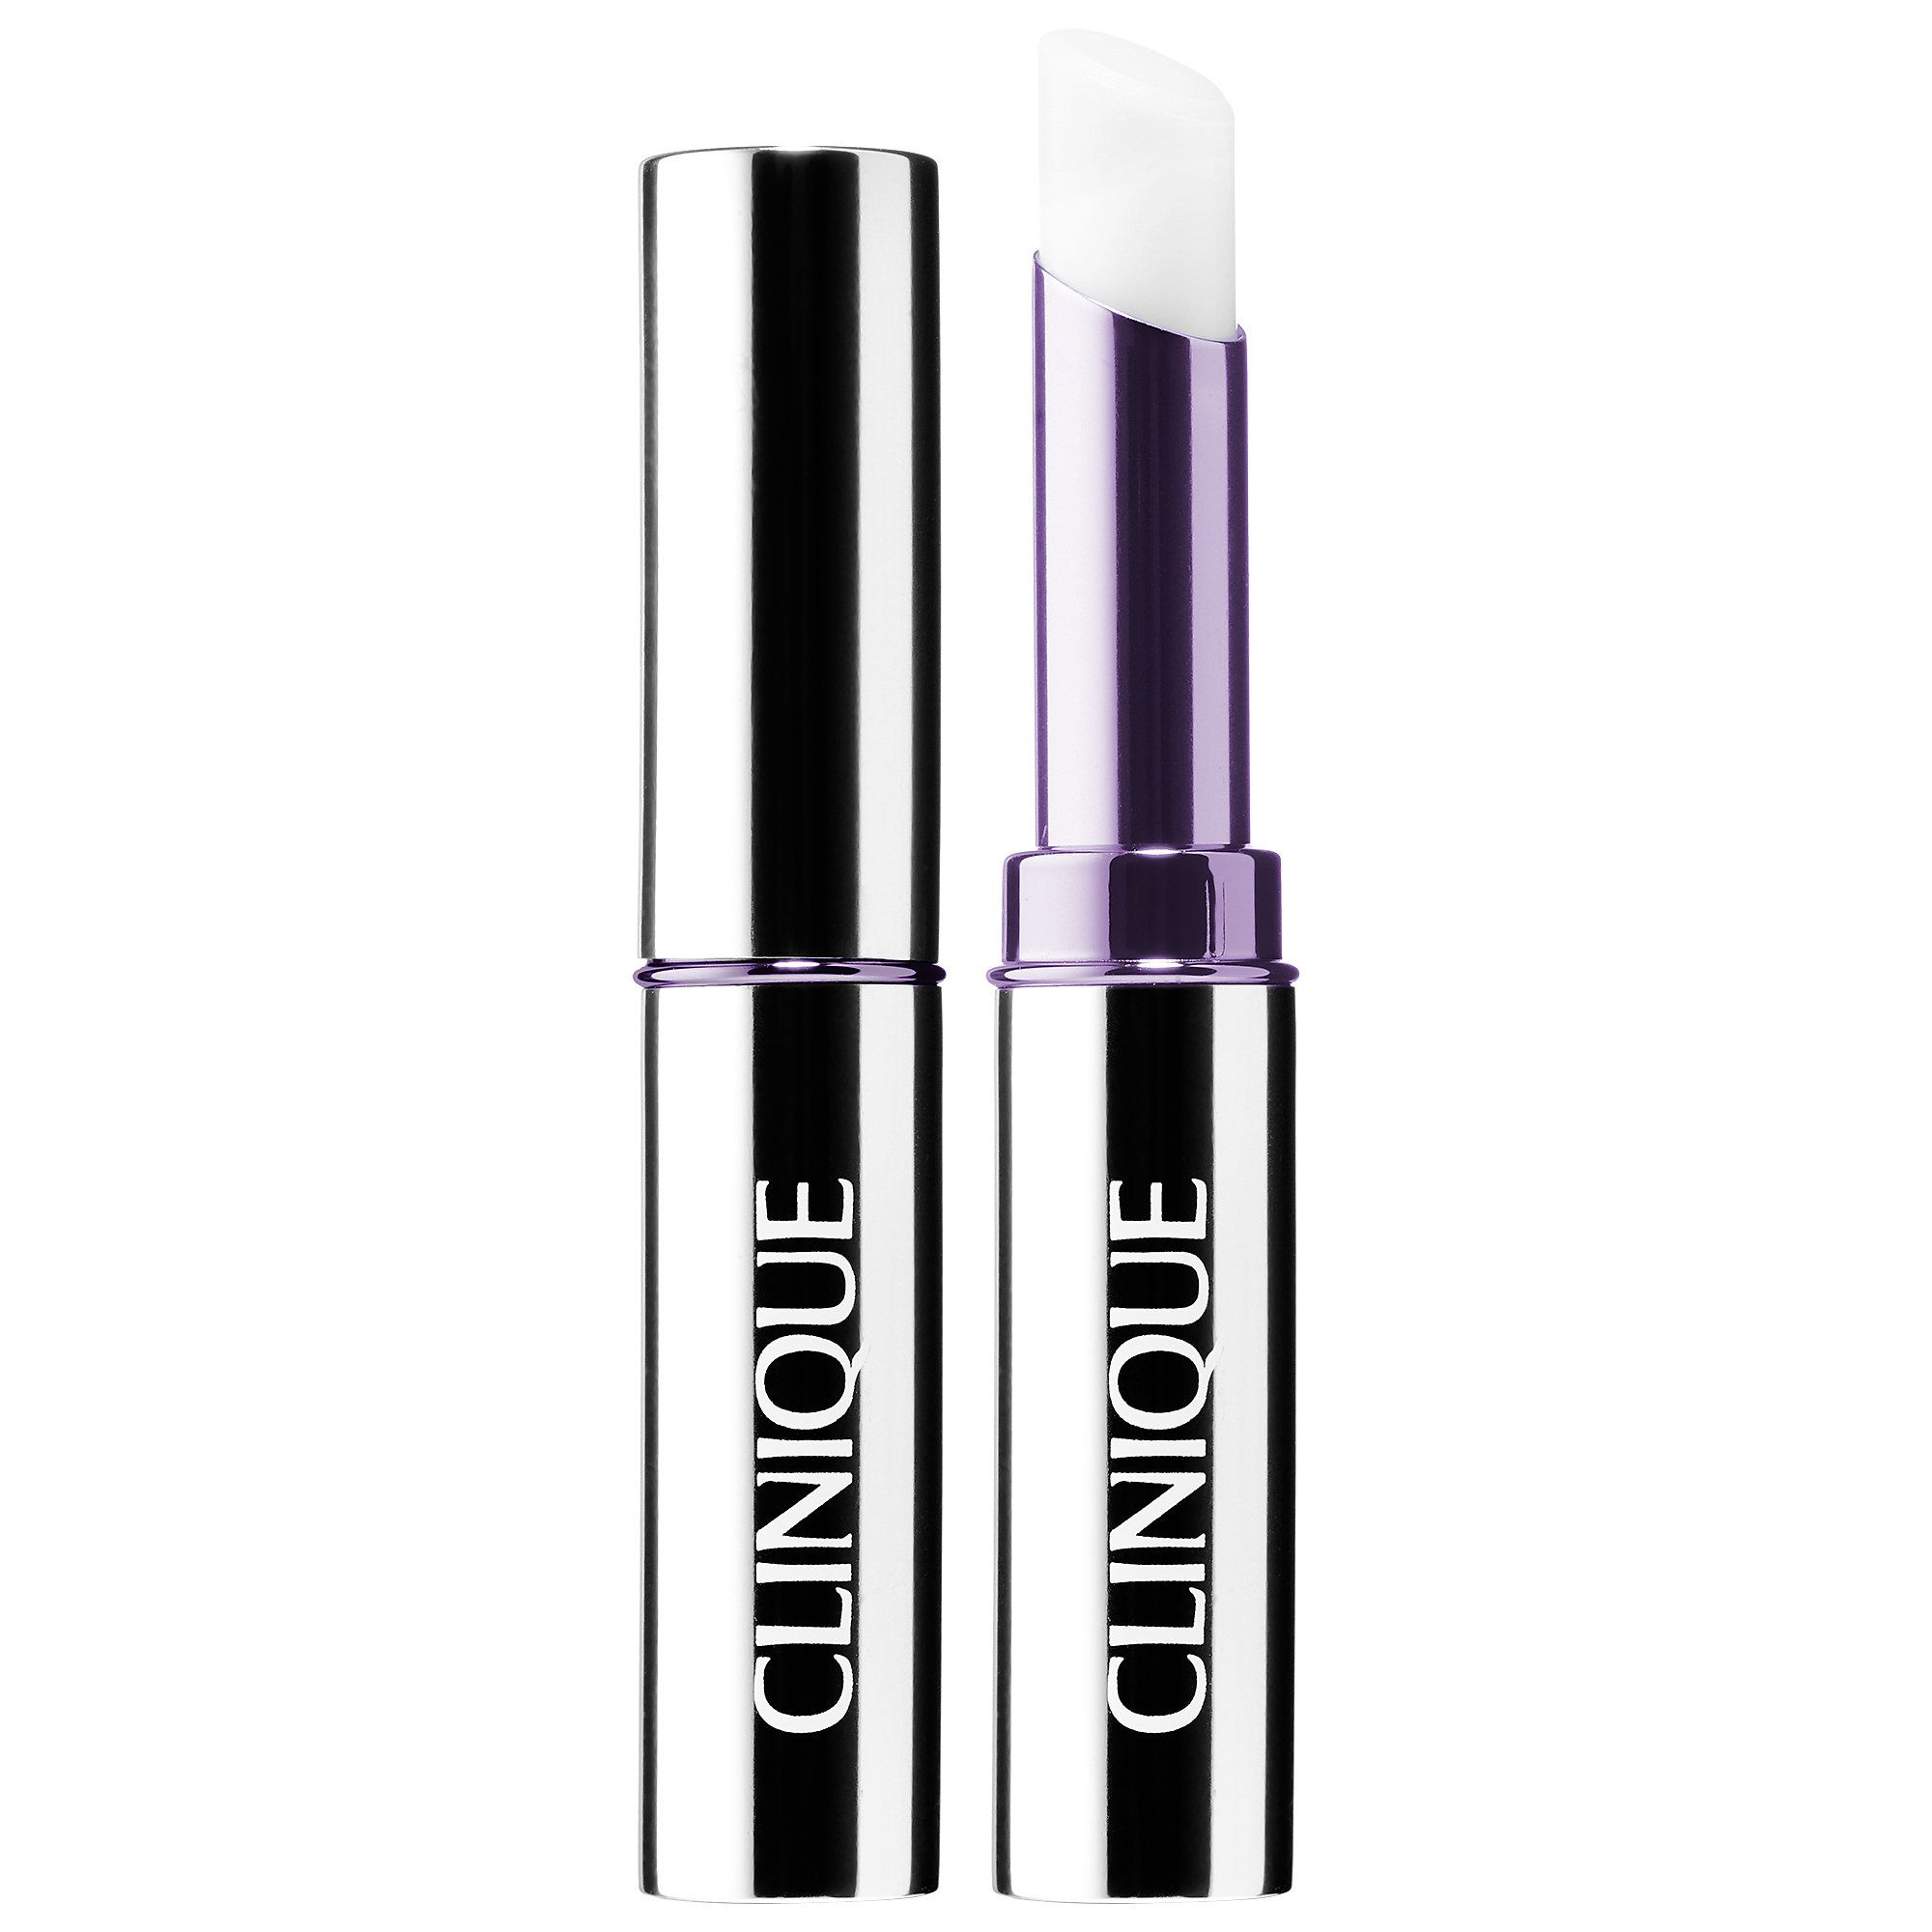 Shop Clinique's Take The Day Off Eye Makeup Remover Stick